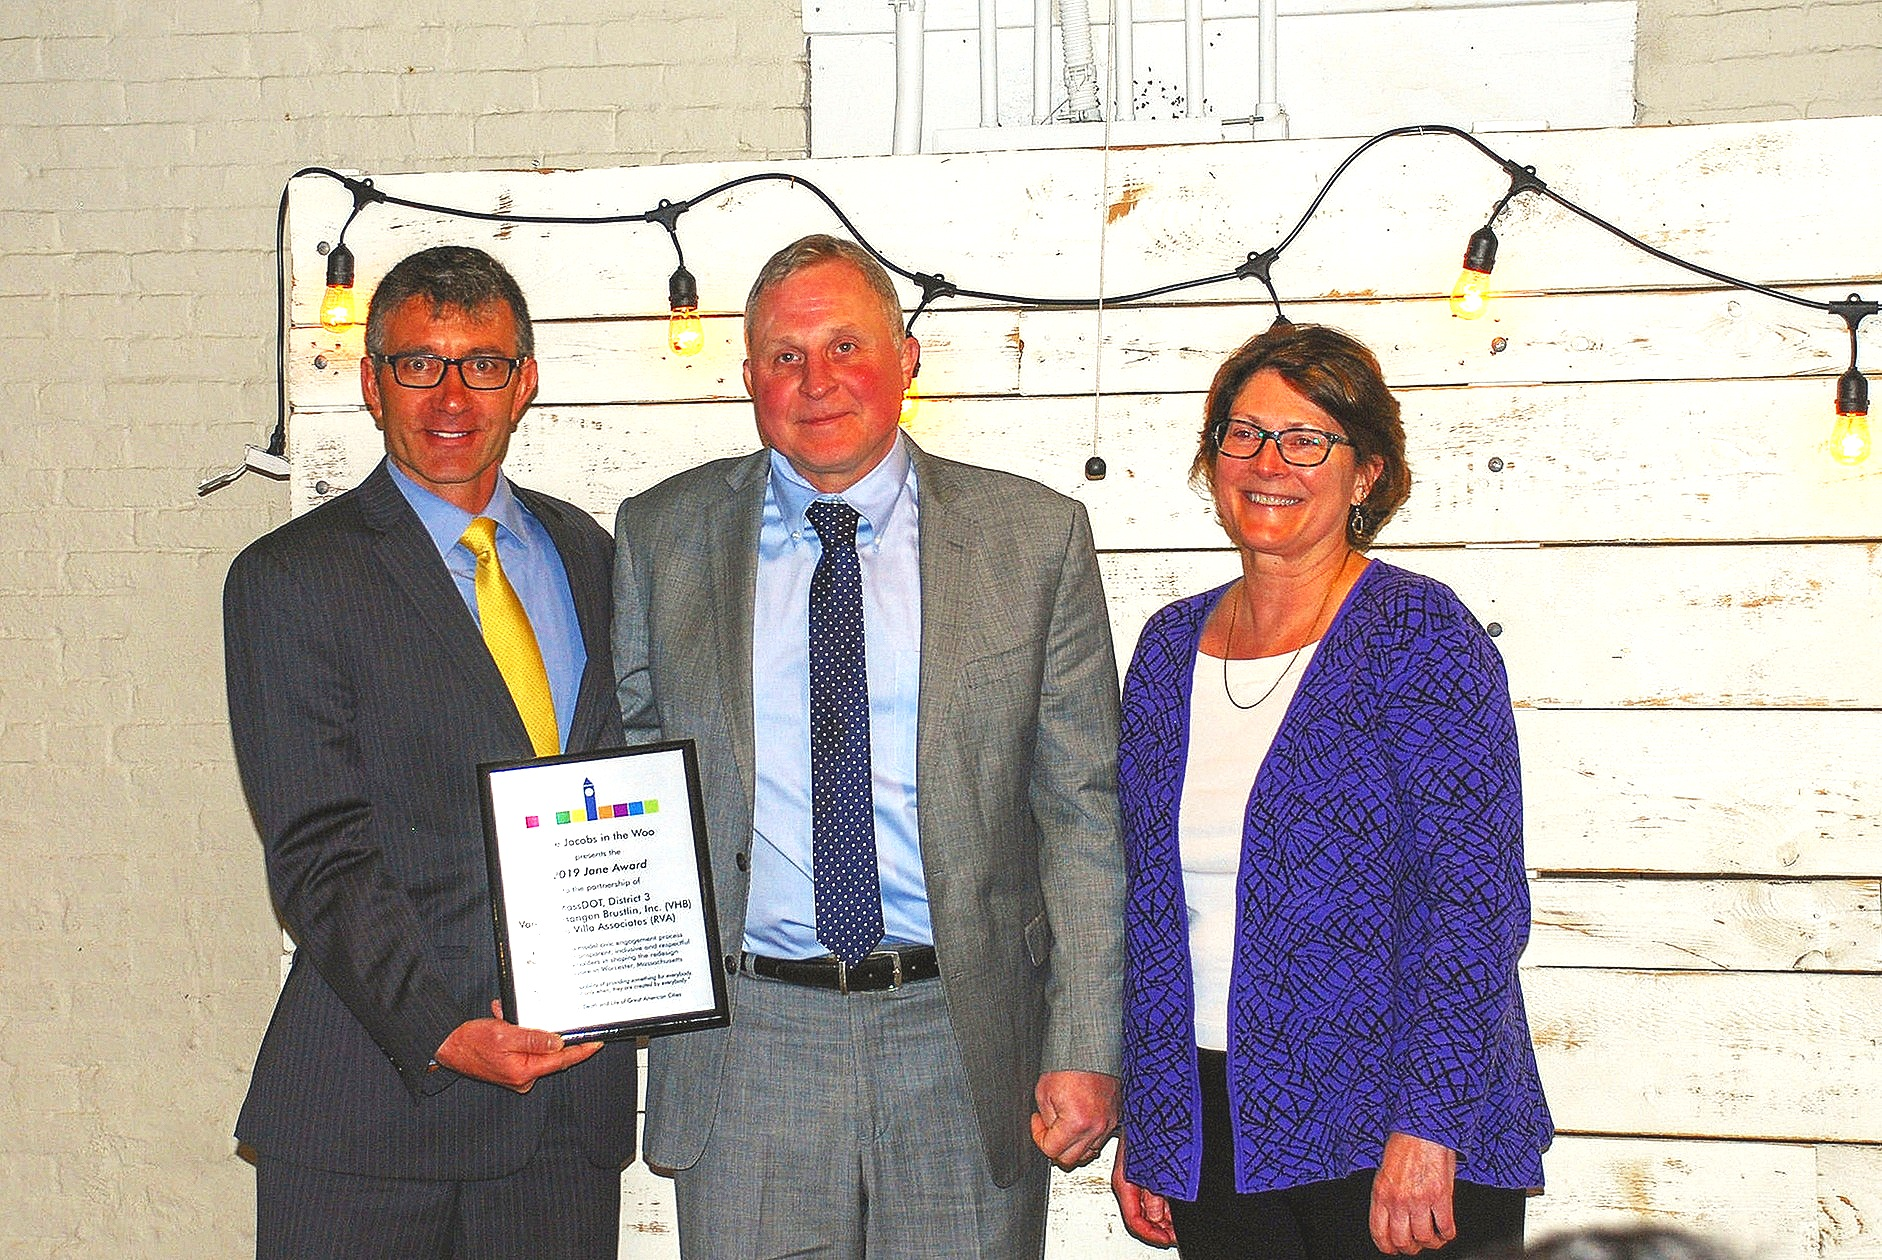 Barry Lorion, District Highway Director of MassDOT, District 3, Don Cooke, Corporate Service Lead from VHB and Kate Barrett, Vice President for Public Involvement from RVA accept the 2019 Jane Award at a ceremony on May 3, 2019 at the White Room, Crompton Place in Worcester, Massachusetts